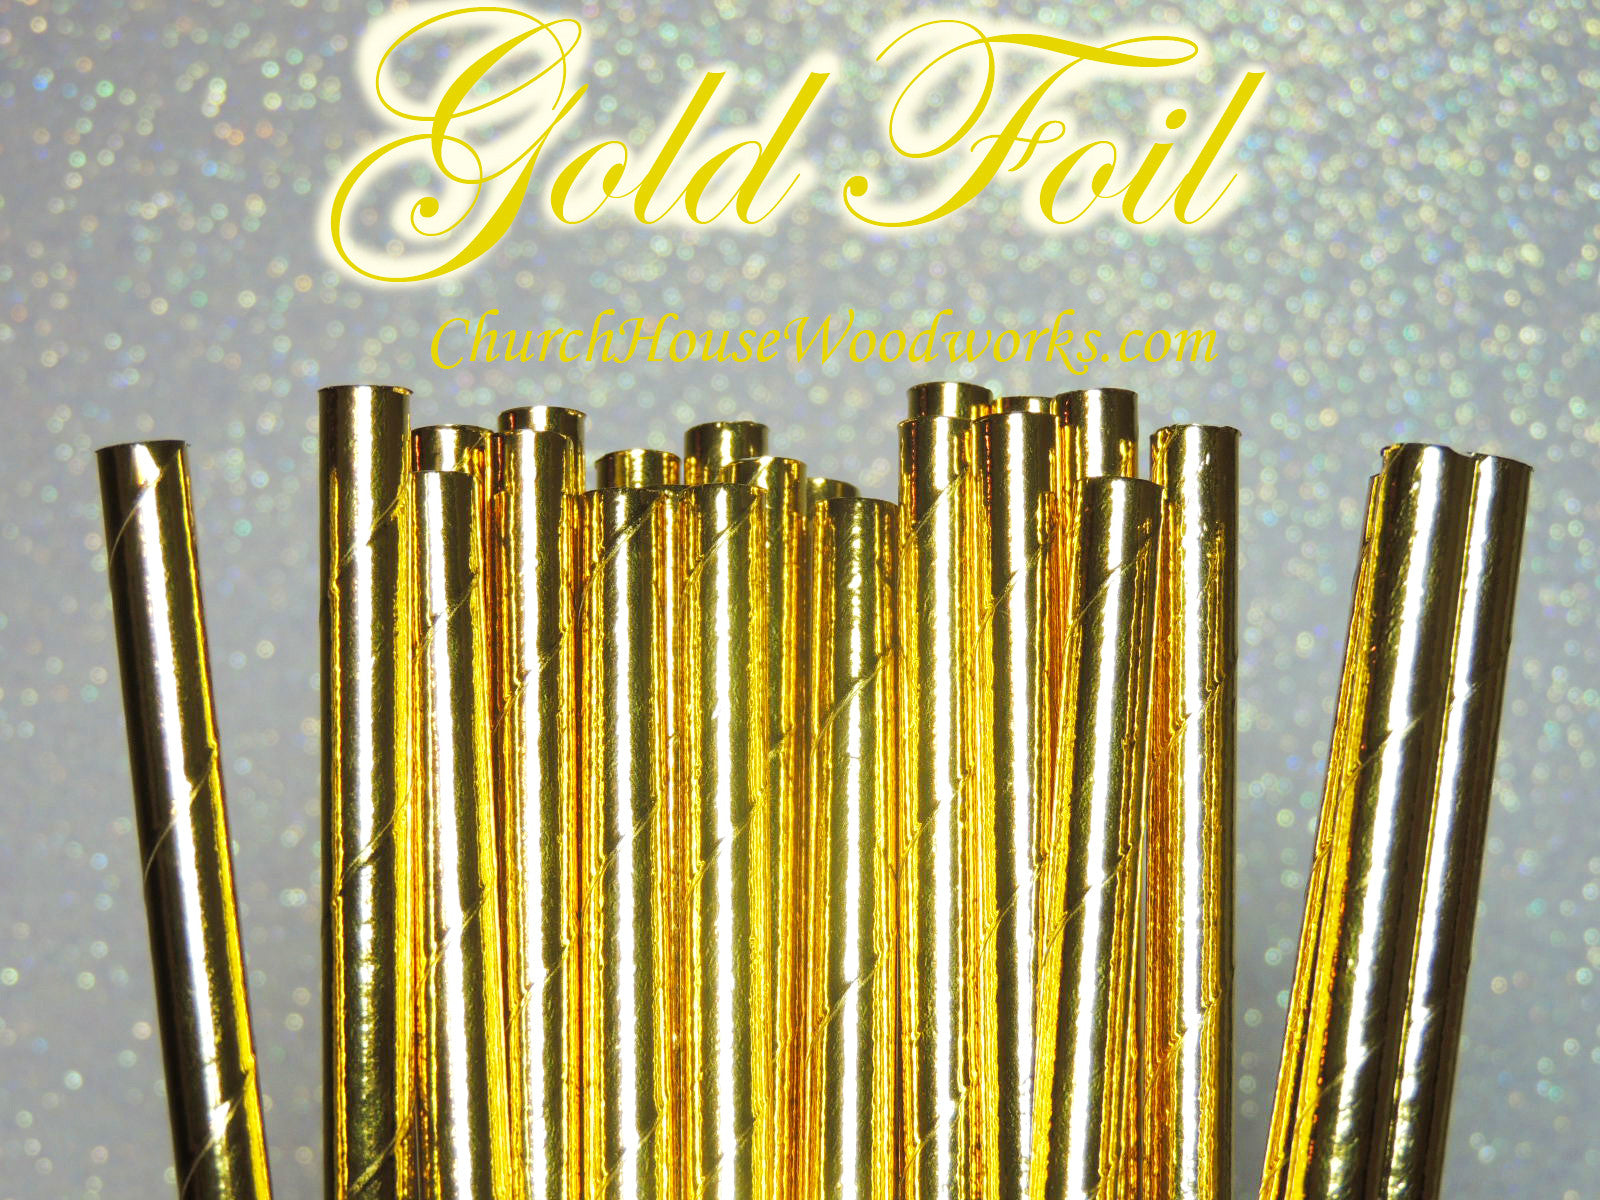 Package of 100 GOLD foil paper straws.  Straw length is 7-3/4 inches.  Color is the reflective foil gold.